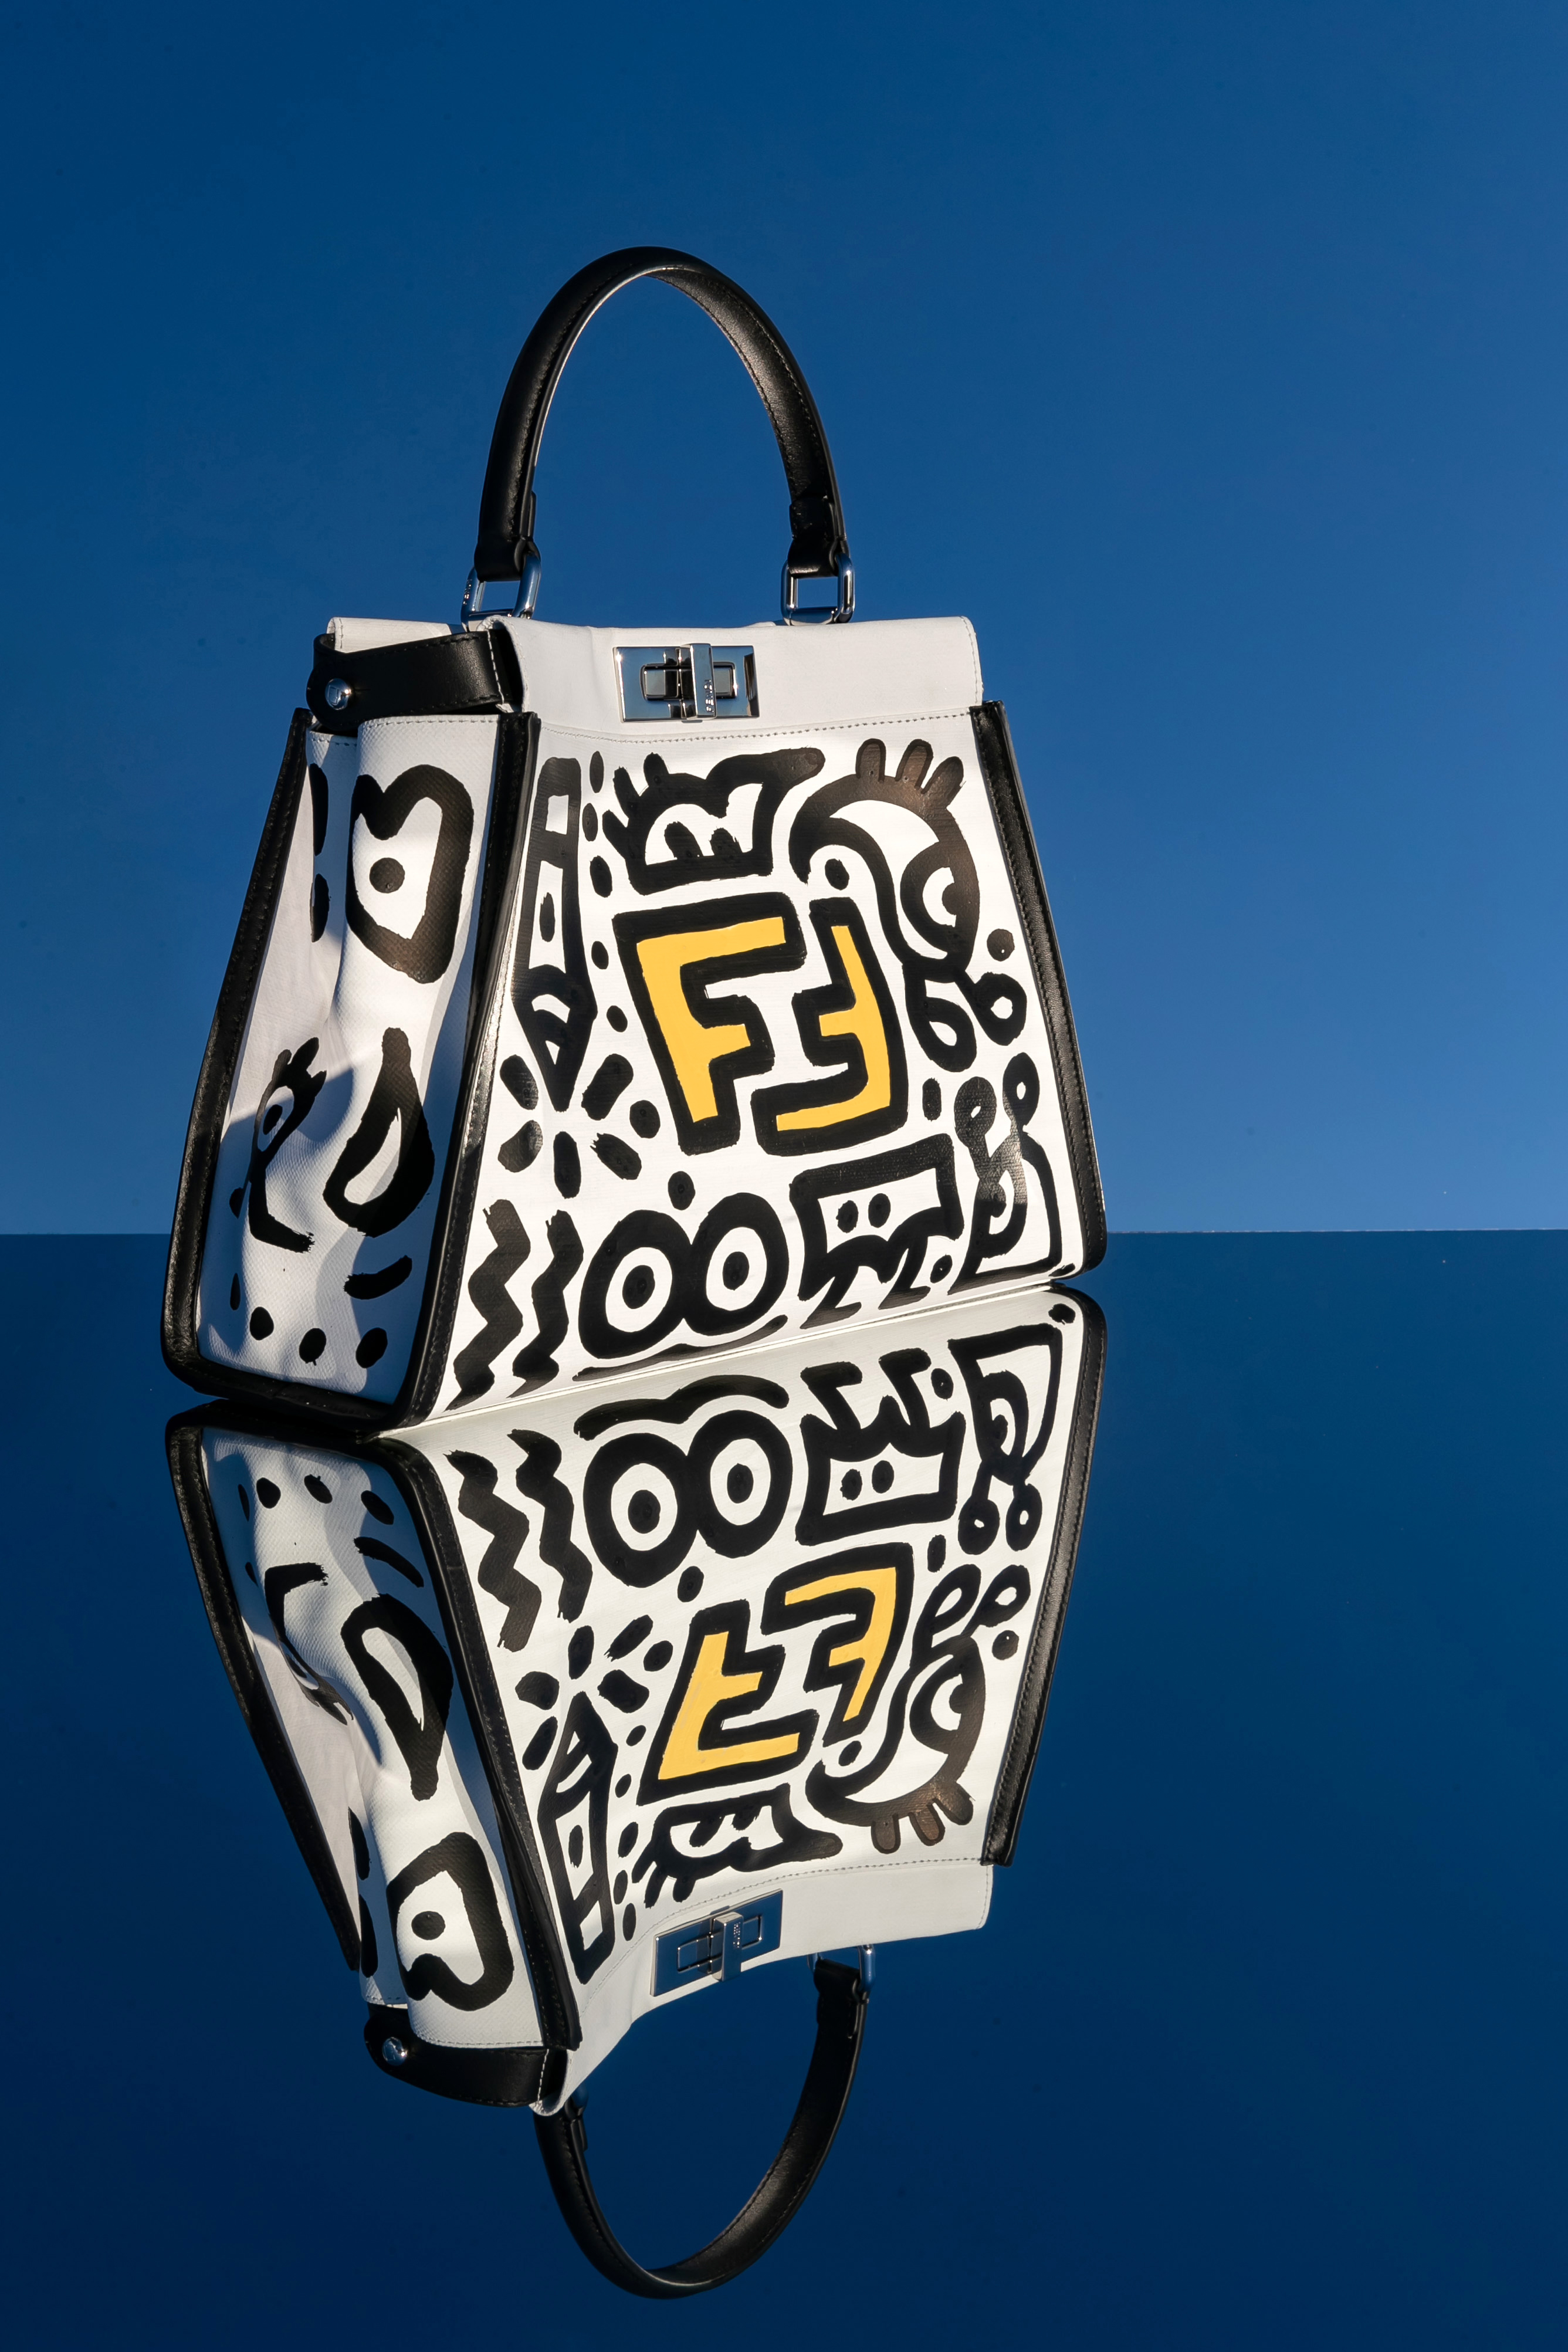 Mr. Doodle Takes Over Fendi Corporate Rooftop